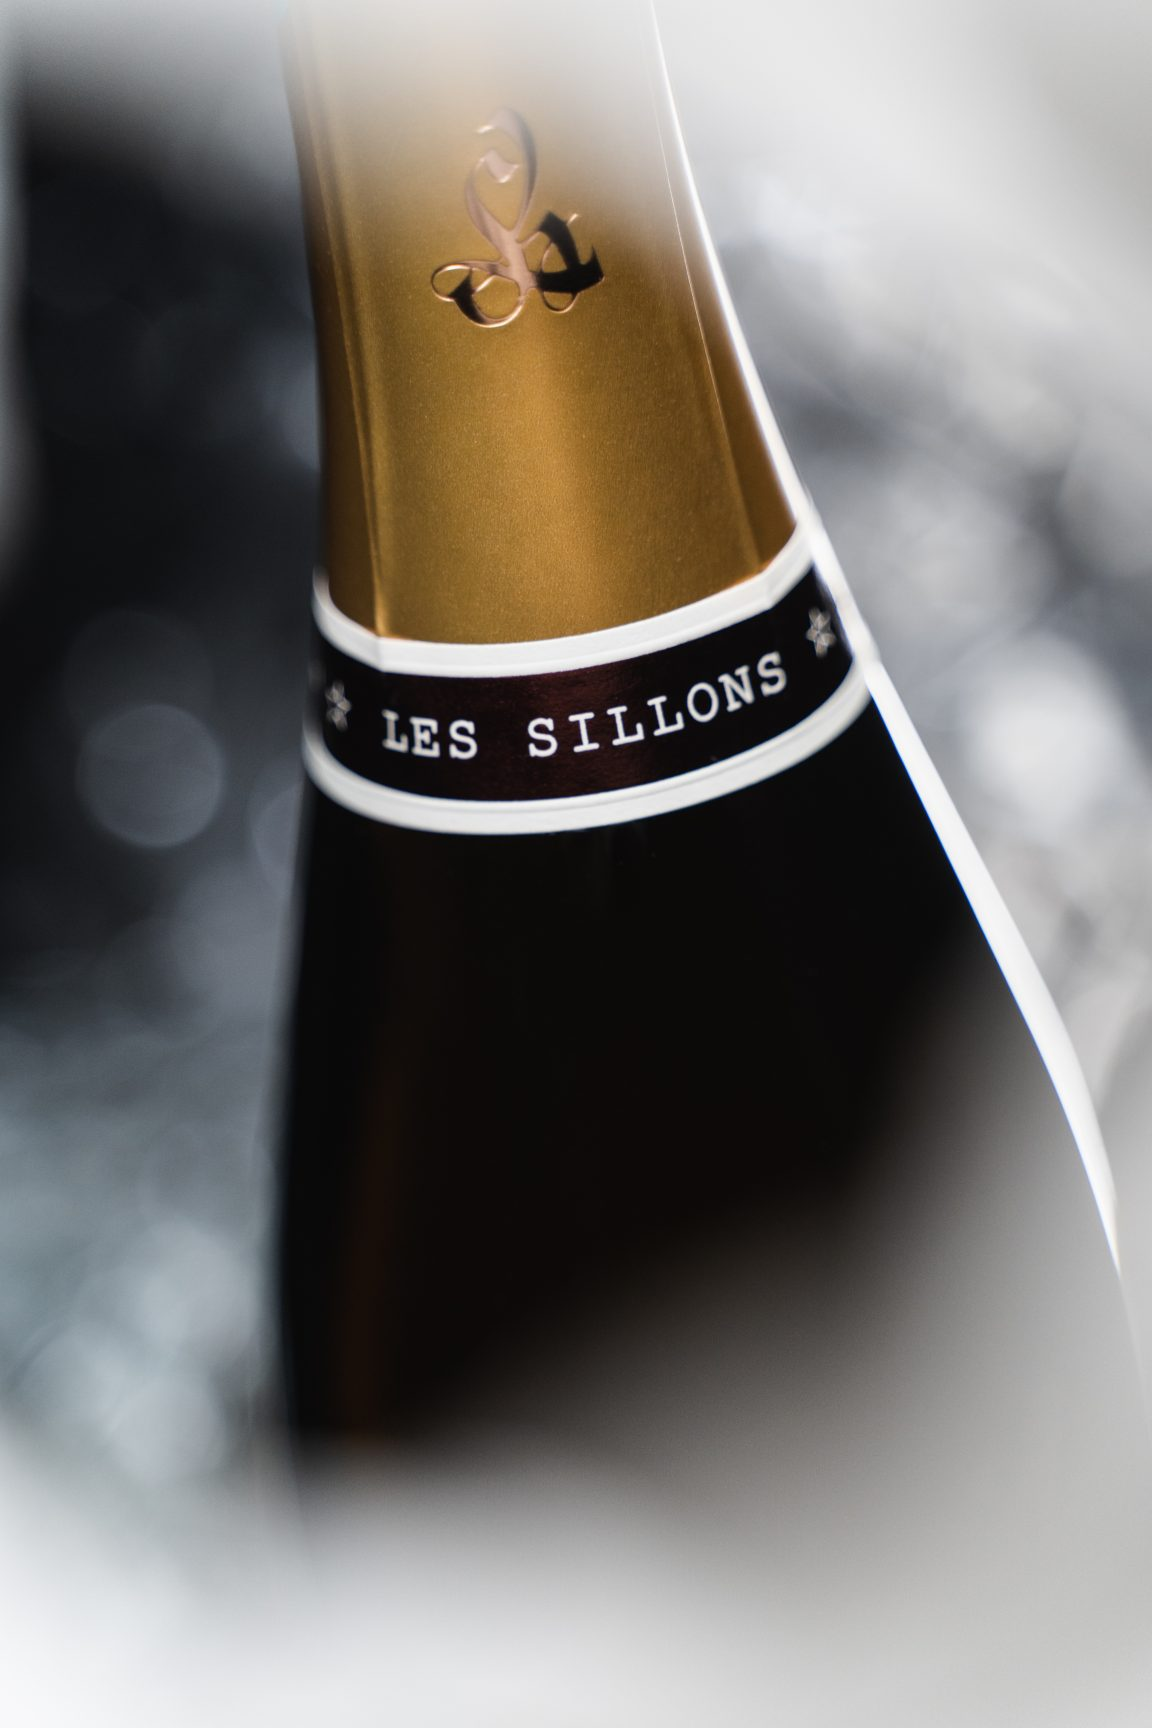 Les Sillons 2013 - Champagne Legras & Haas